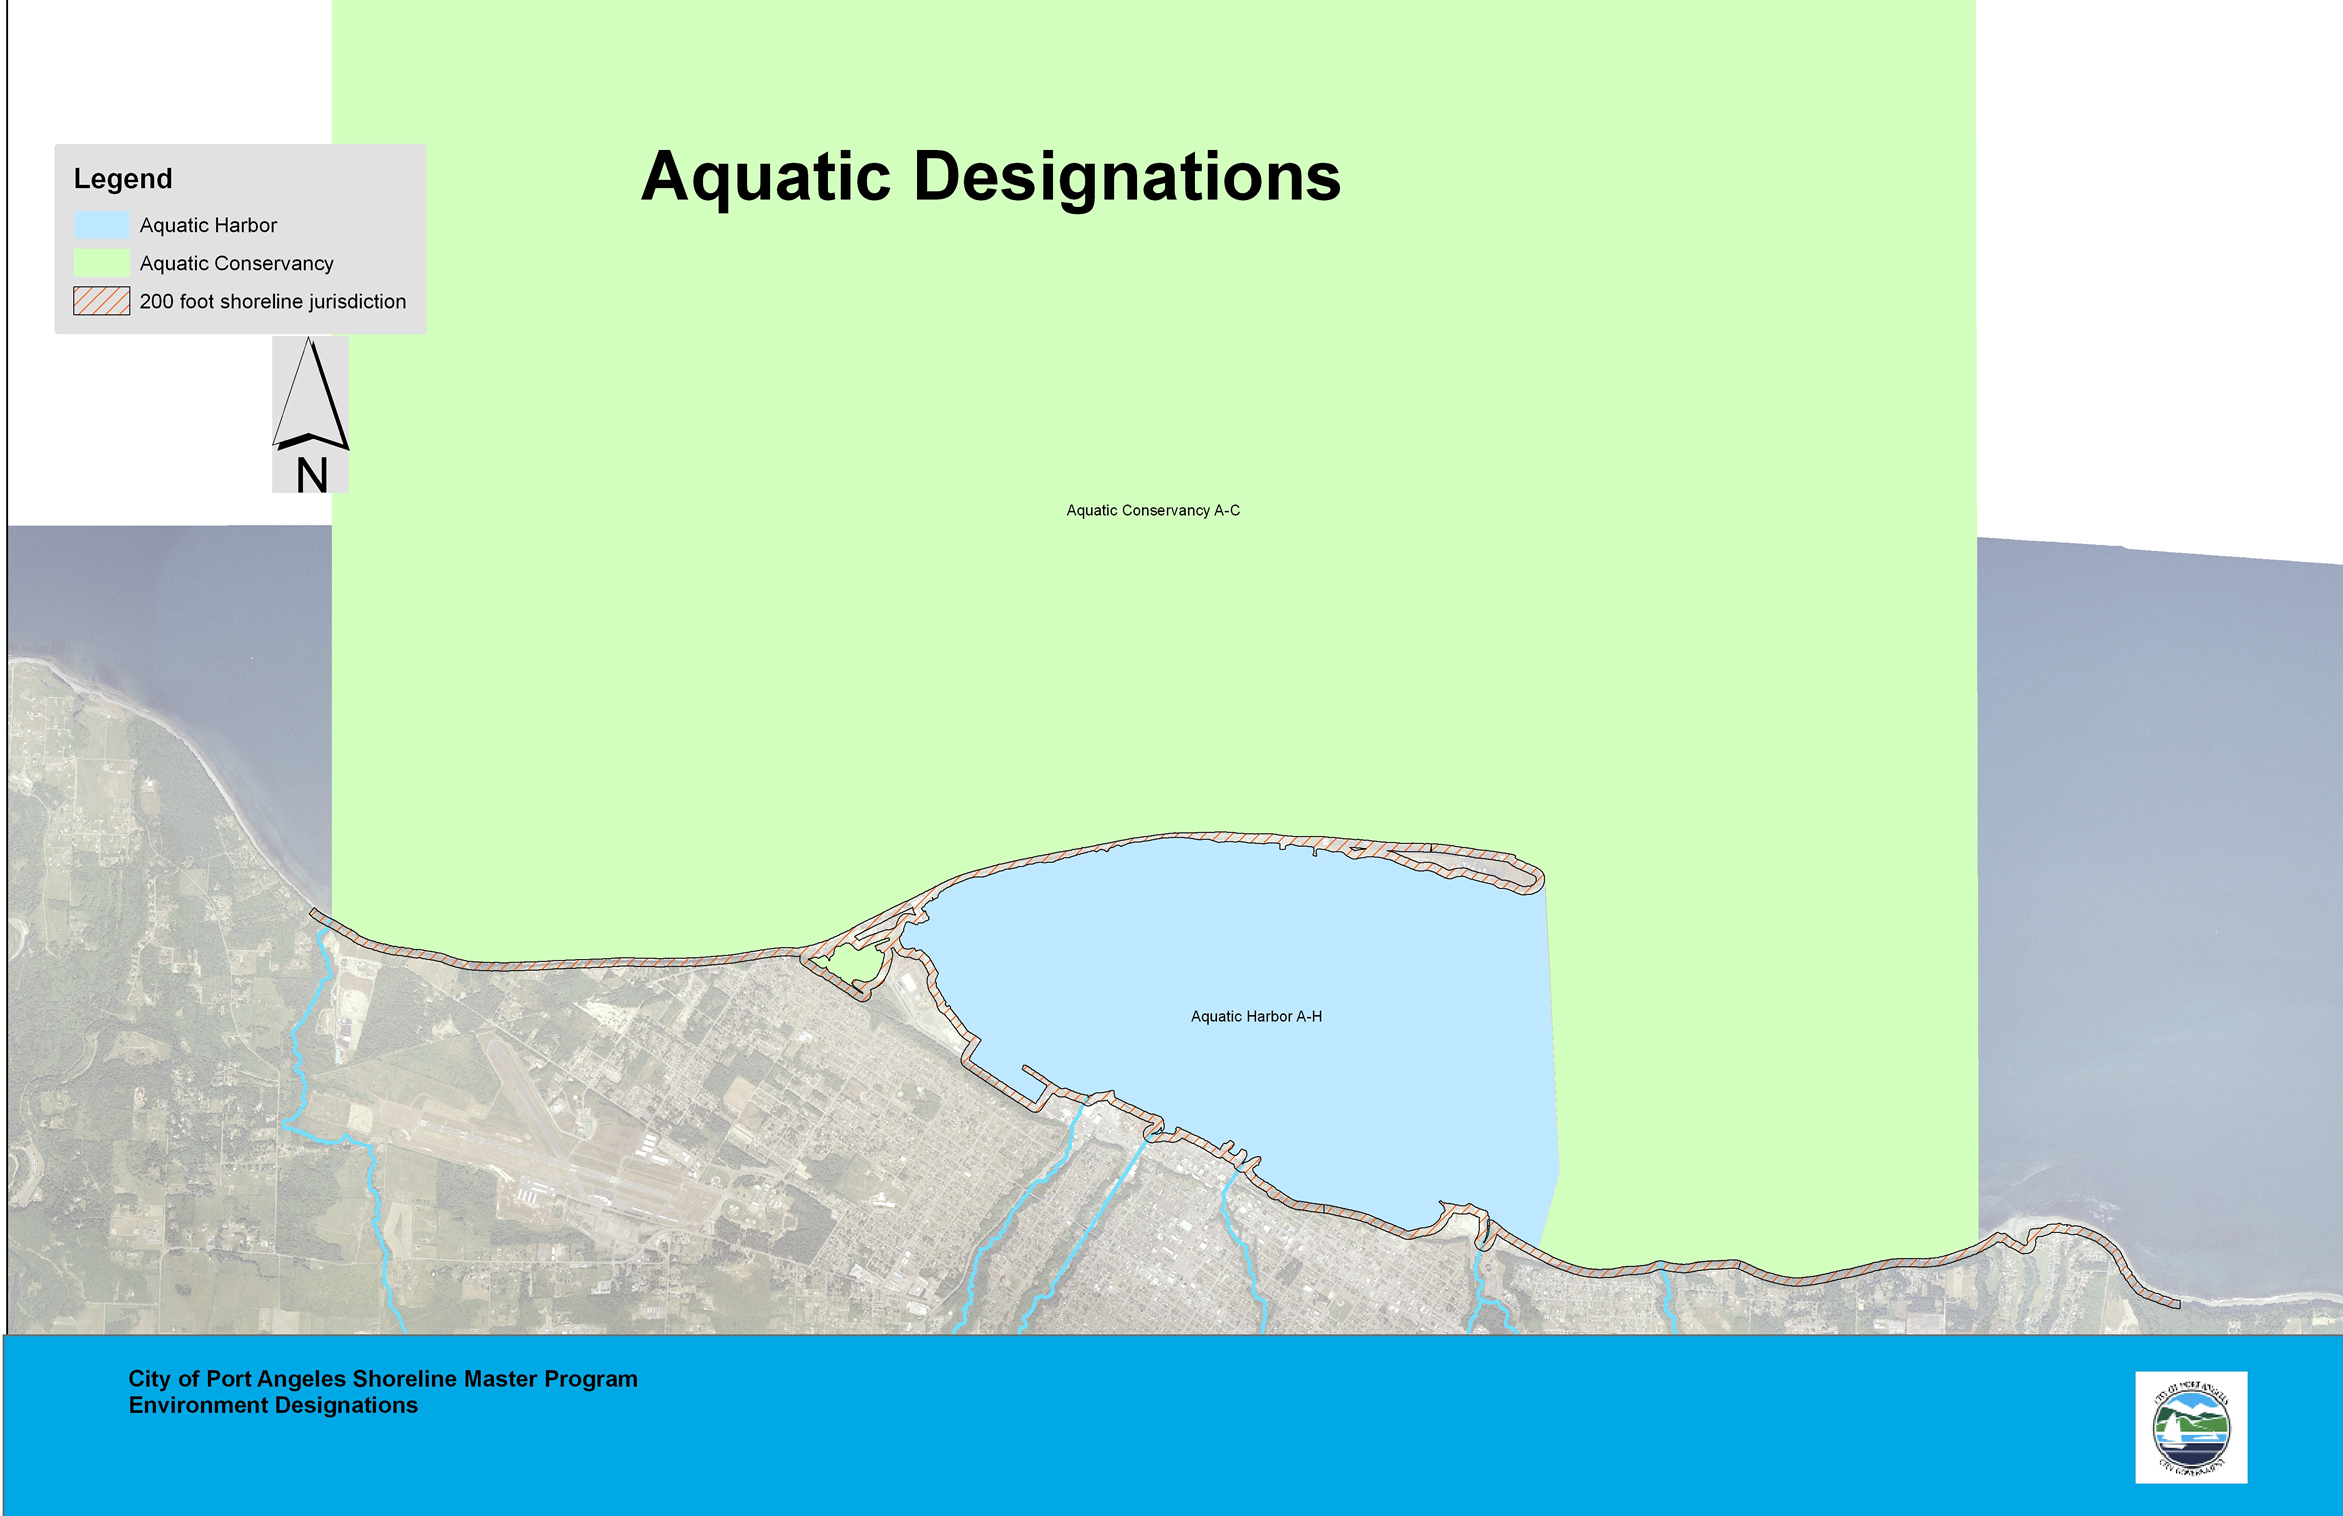 Aquatic Designations Map